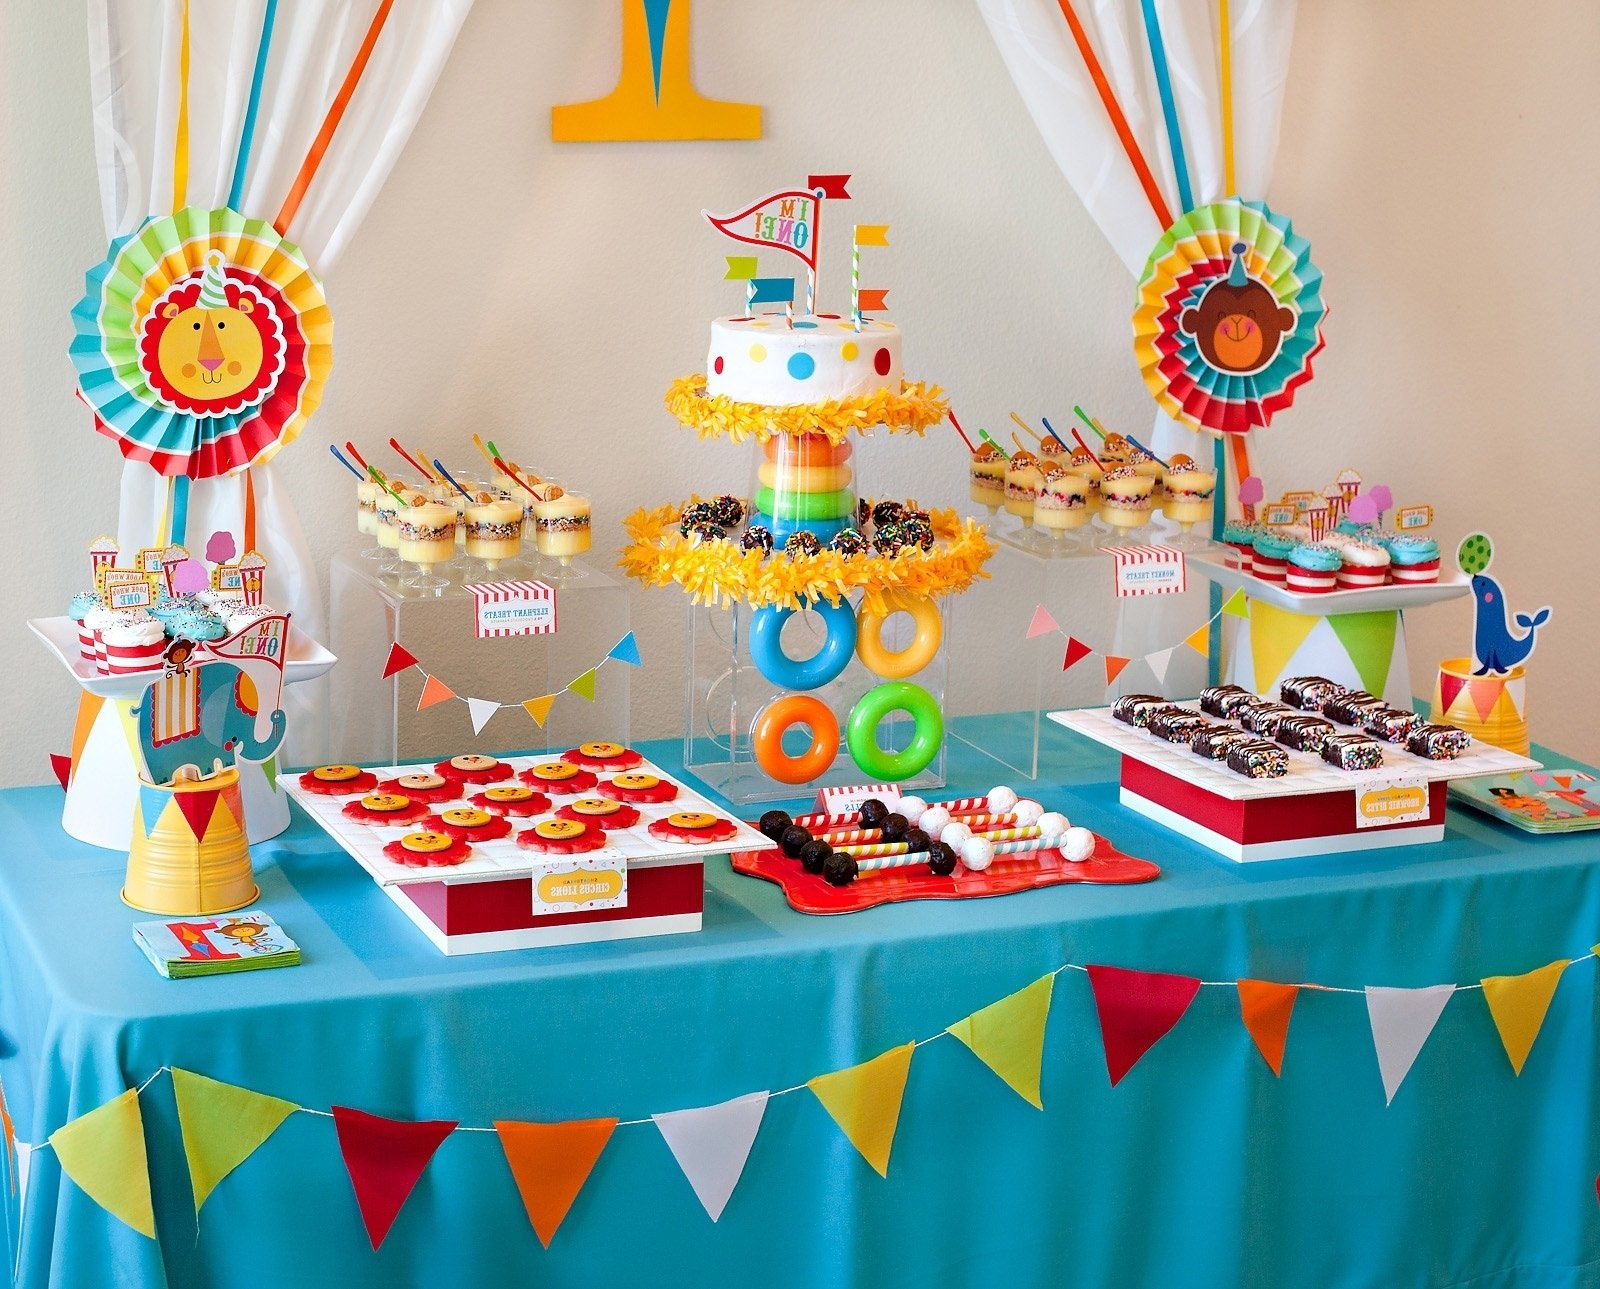 10 nice ideas for toddler birthday parties